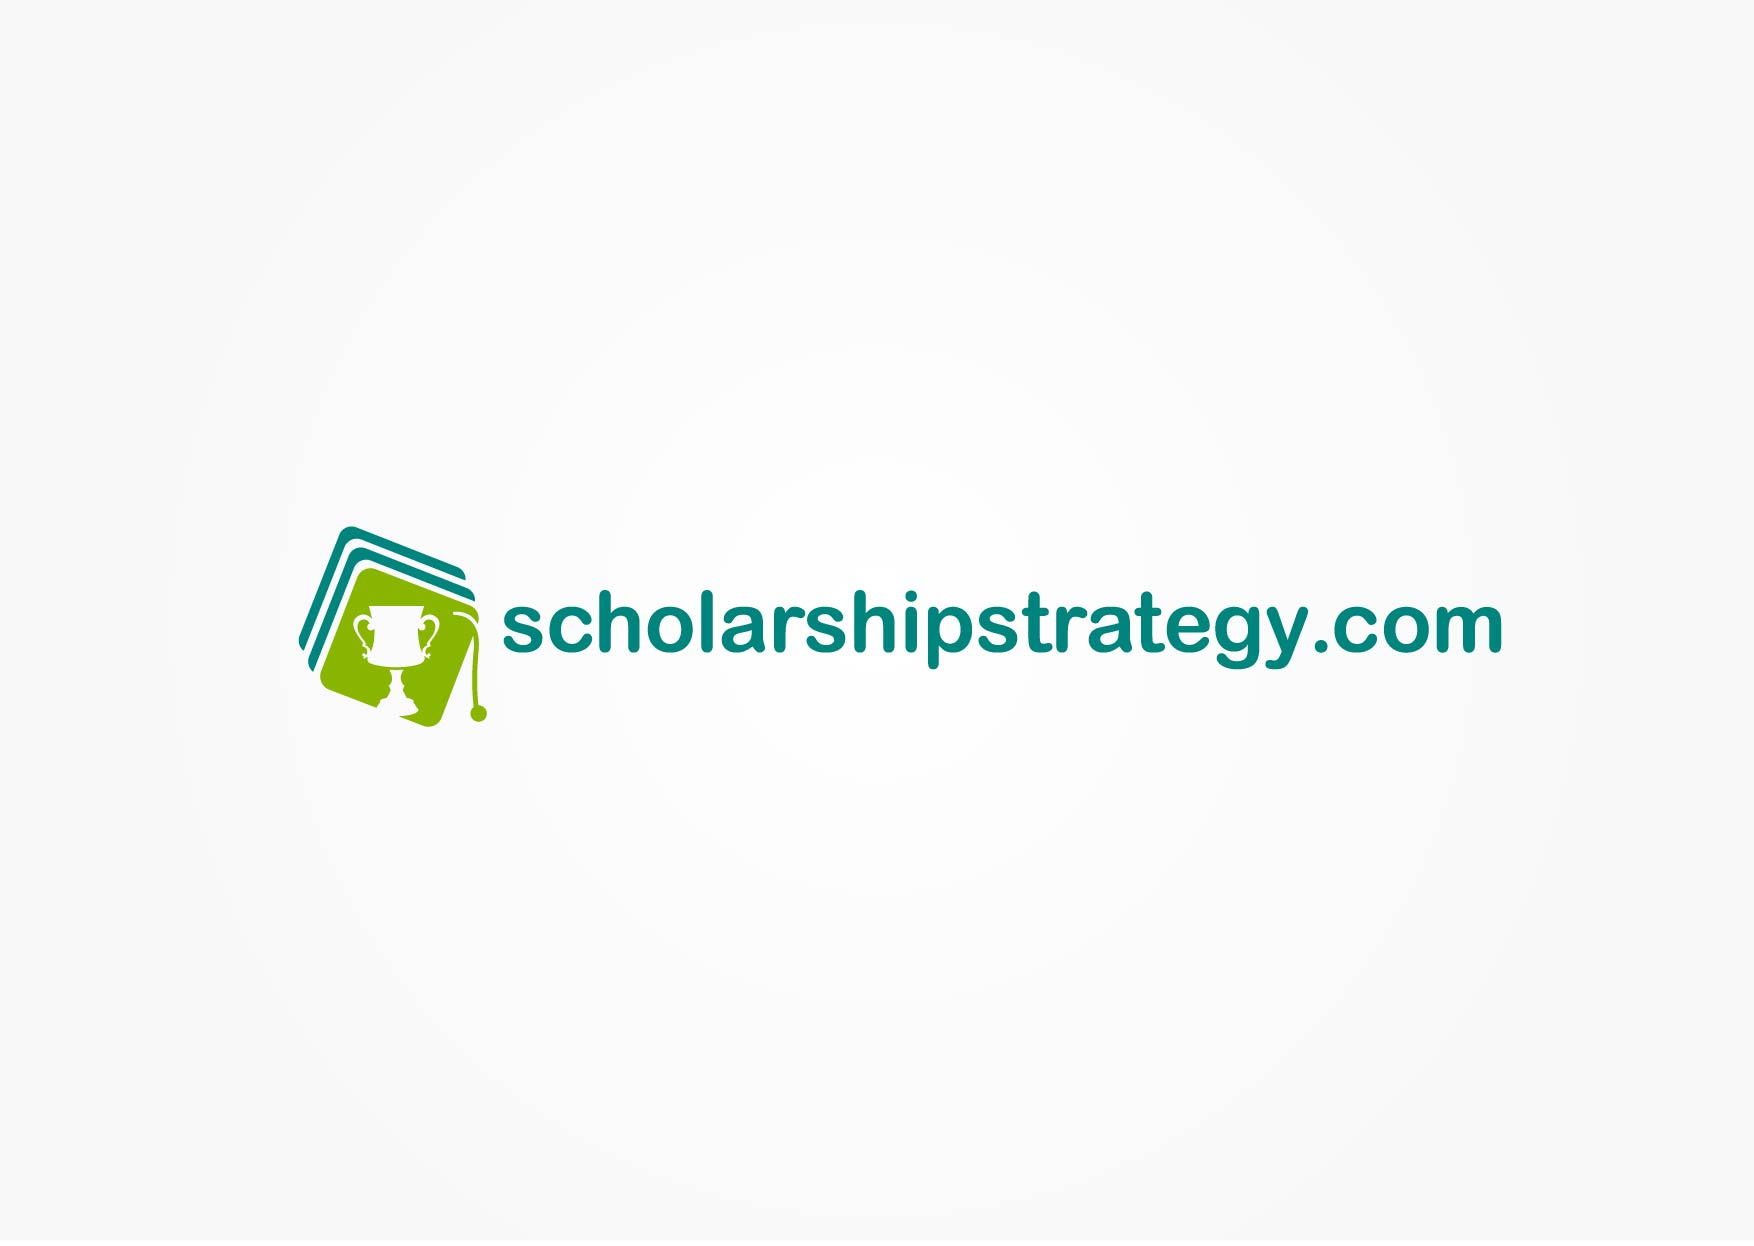 Logo Design by Osi Indra - Entry No. 23 in the Logo Design Contest Captivating Logo Design for Scholarshipstrategy.com.